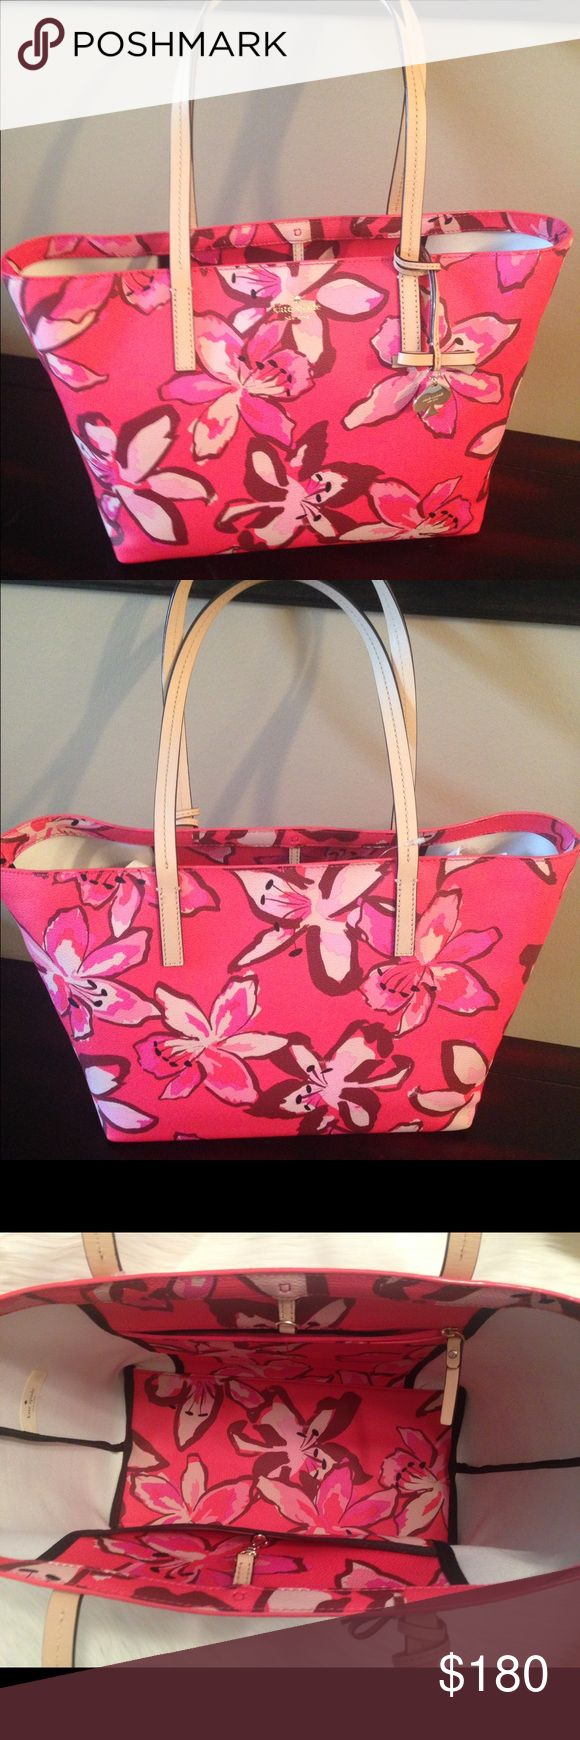 "NWT KATE SPADE HAWTHORNE LANE FLORAL SHOULDER BAG Authentic and Brand New, Large Kate Spade Hawthorne Lane Floral Shoulder Bag. Color- Surprise Coral, very spacious, has an inside zipper packet and three other inside packets. Measures 10""H X 12""L-bottom and 16""L-top X 6.5""W with a 9.5""H handle drop. NWT, no trades. kate spade Bags Shoulder Bags"